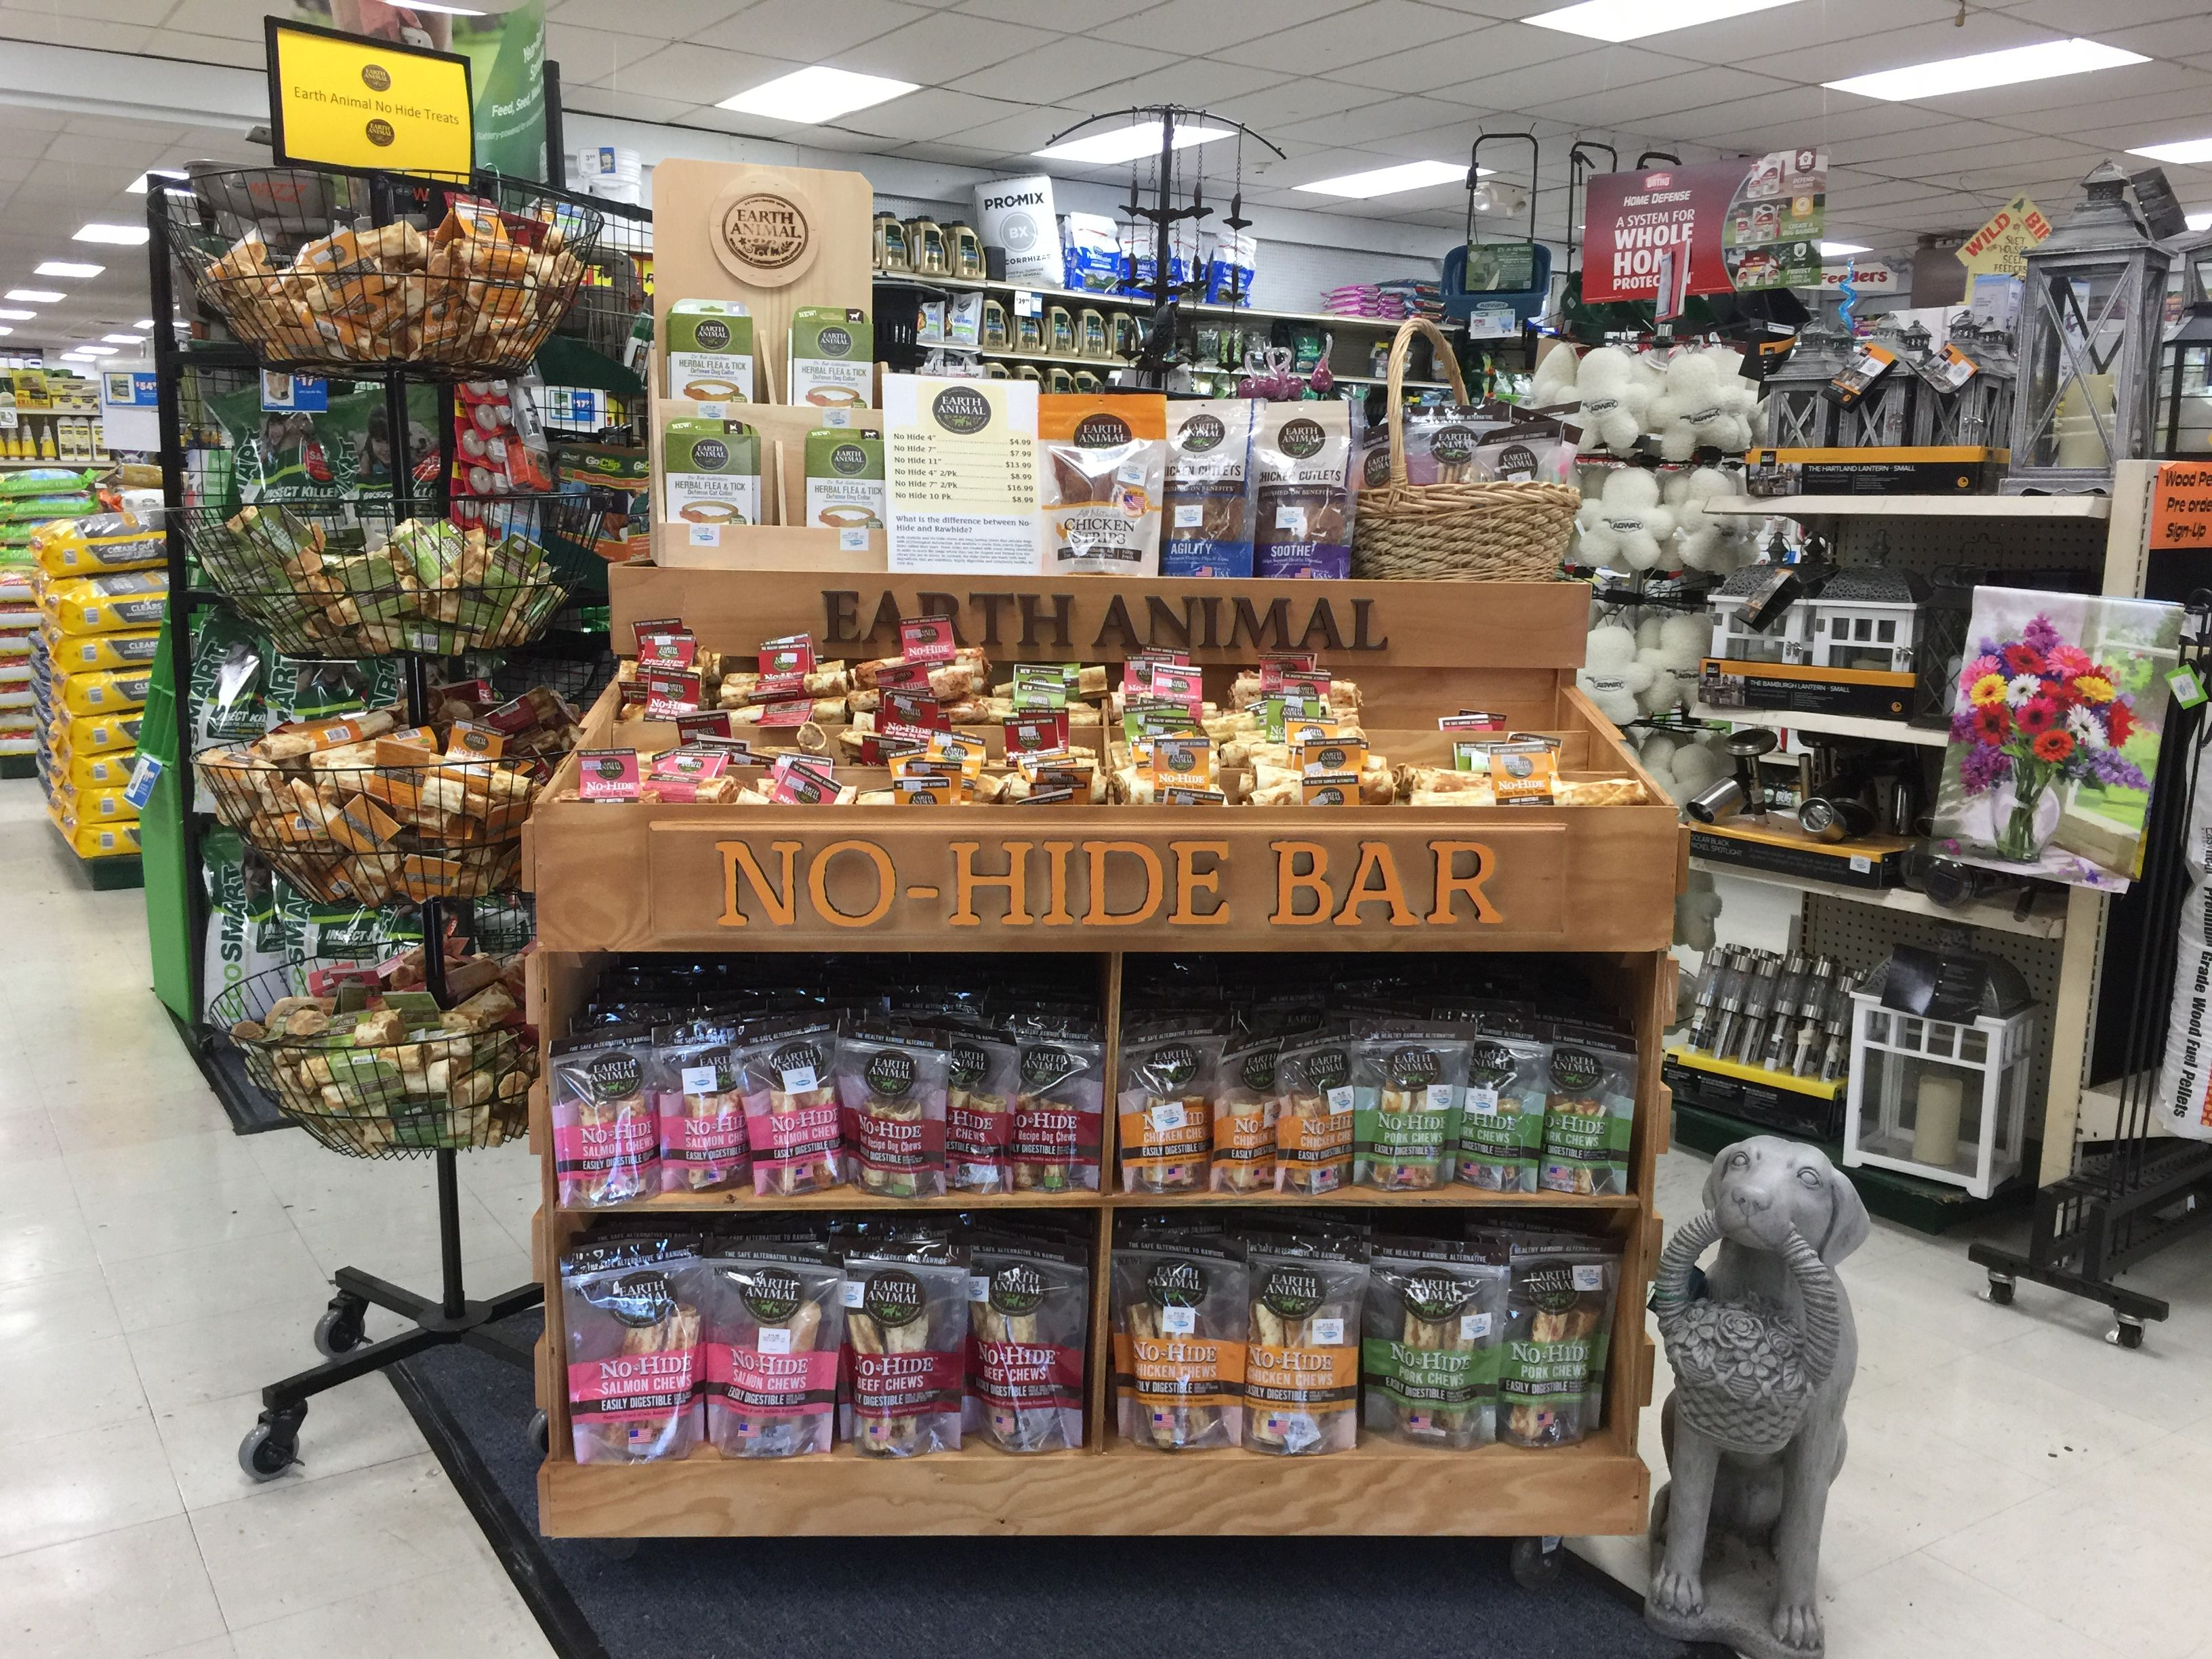 The Singles Bar For Healthy Chewers Is Now At Myagway Stores Visit Our Earth Animal No Hide Display For This Award Winning L Dog Chews Hidden Bar Healthy Pets